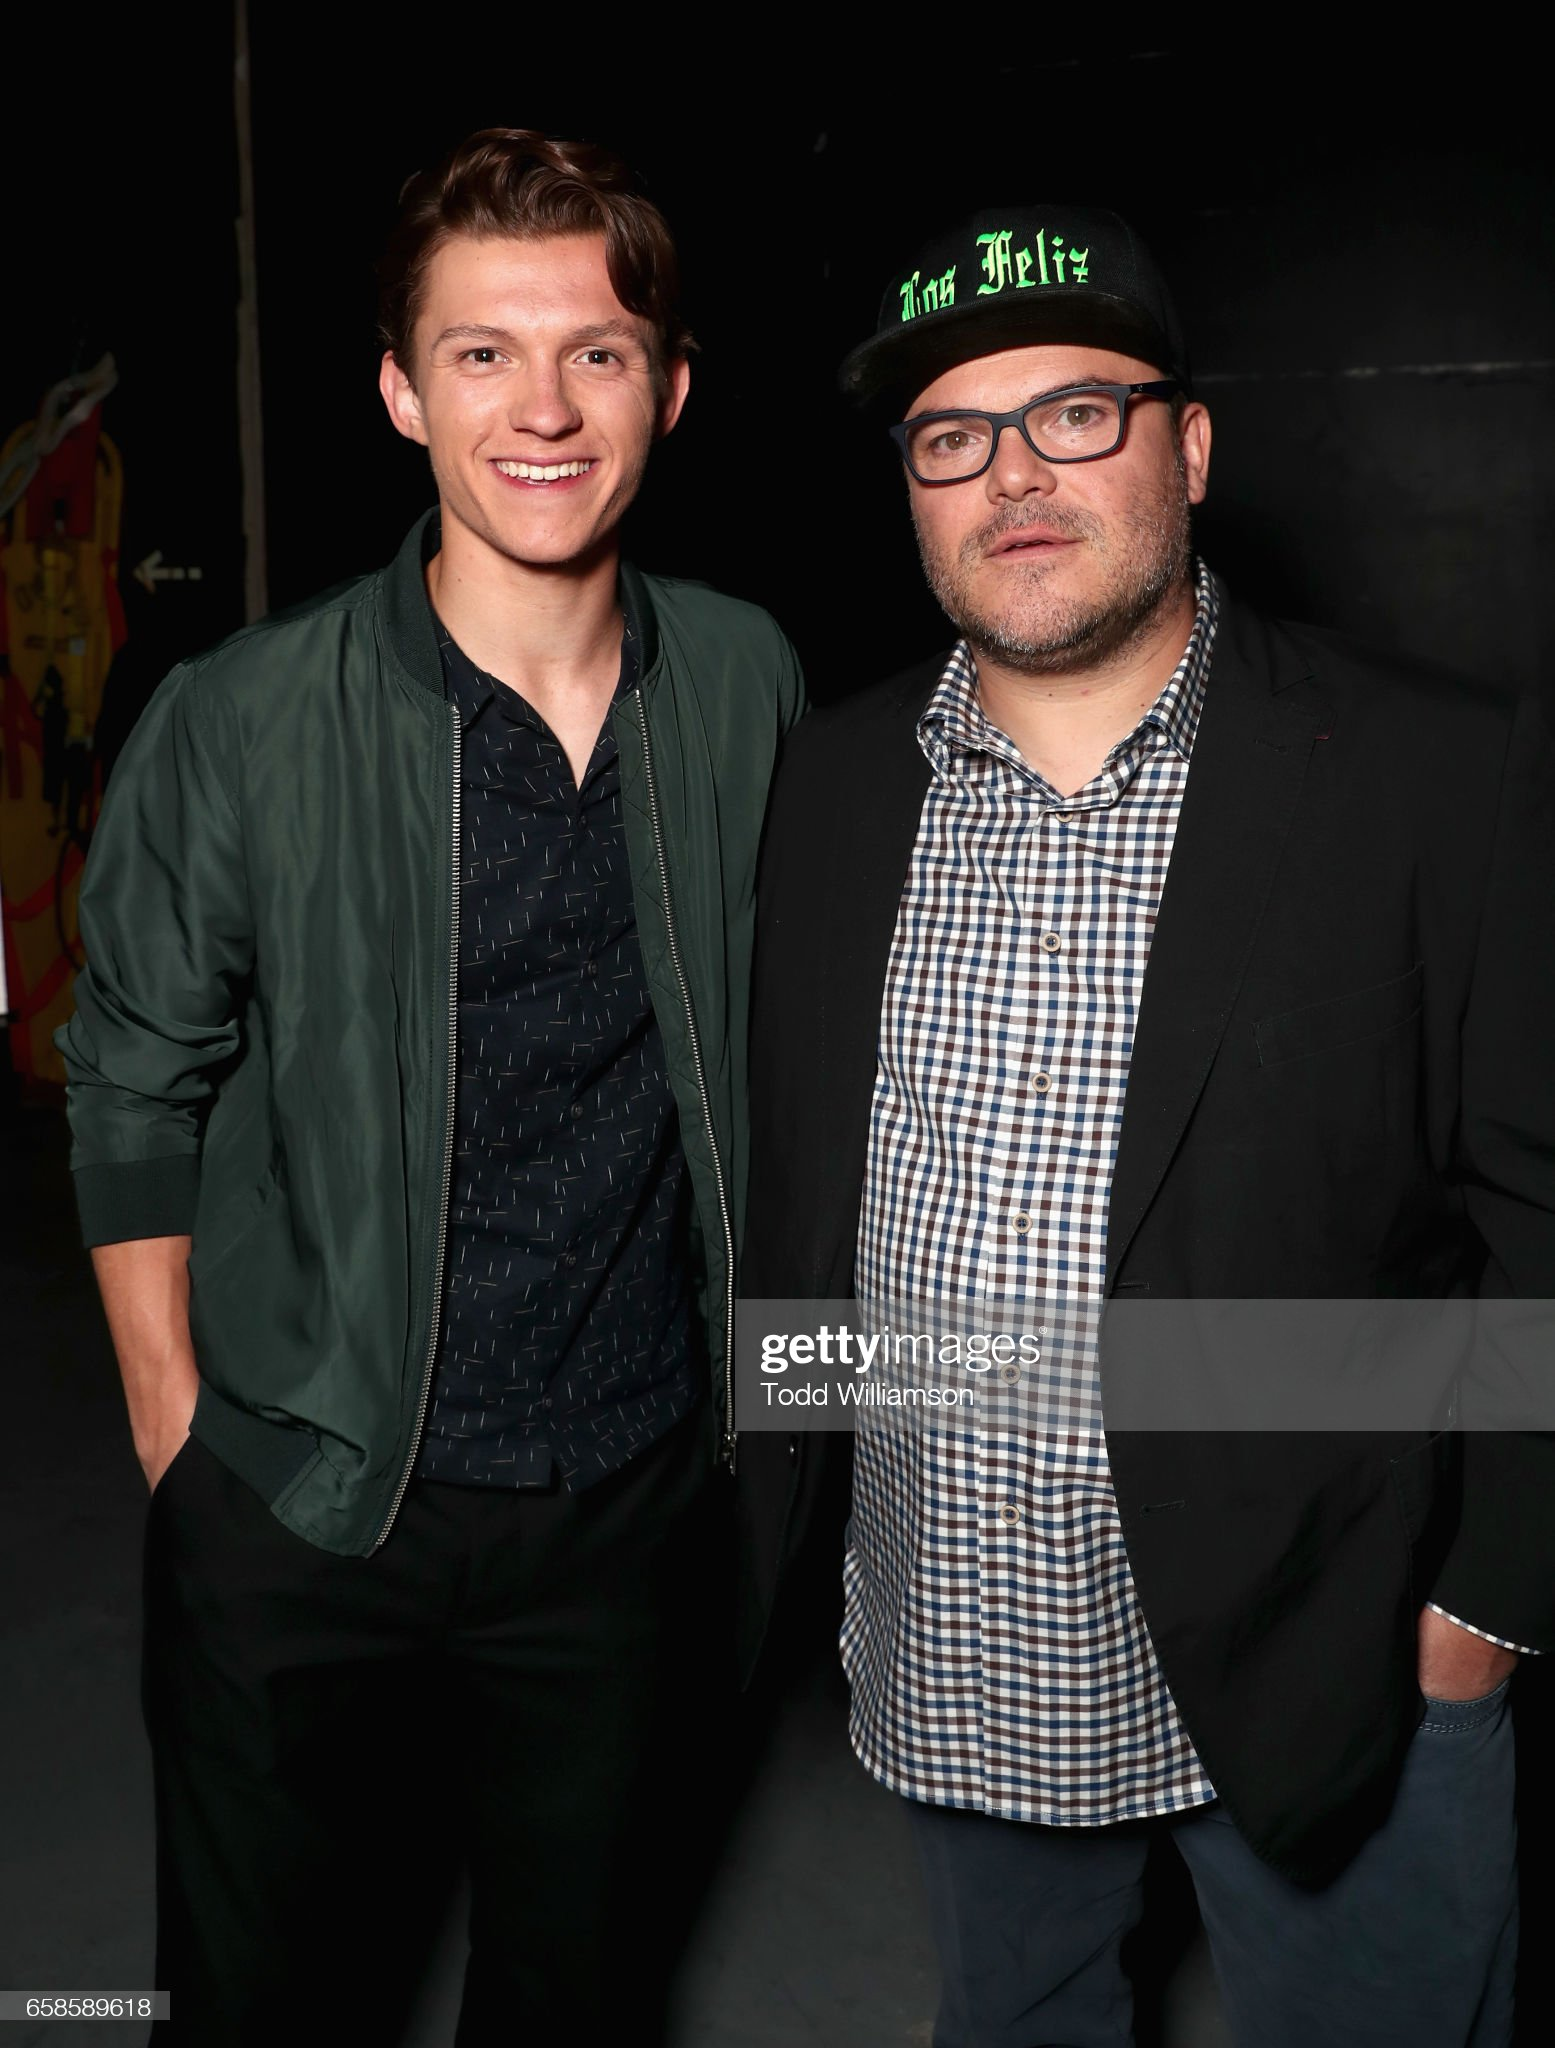 ¿Cuánto mide Tom Holland? - Altura - Real height Actors-tom-holland-and-jack-black-at-the-cinemacon-2017-gala-opening-picture-id658589618?s=2048x2048